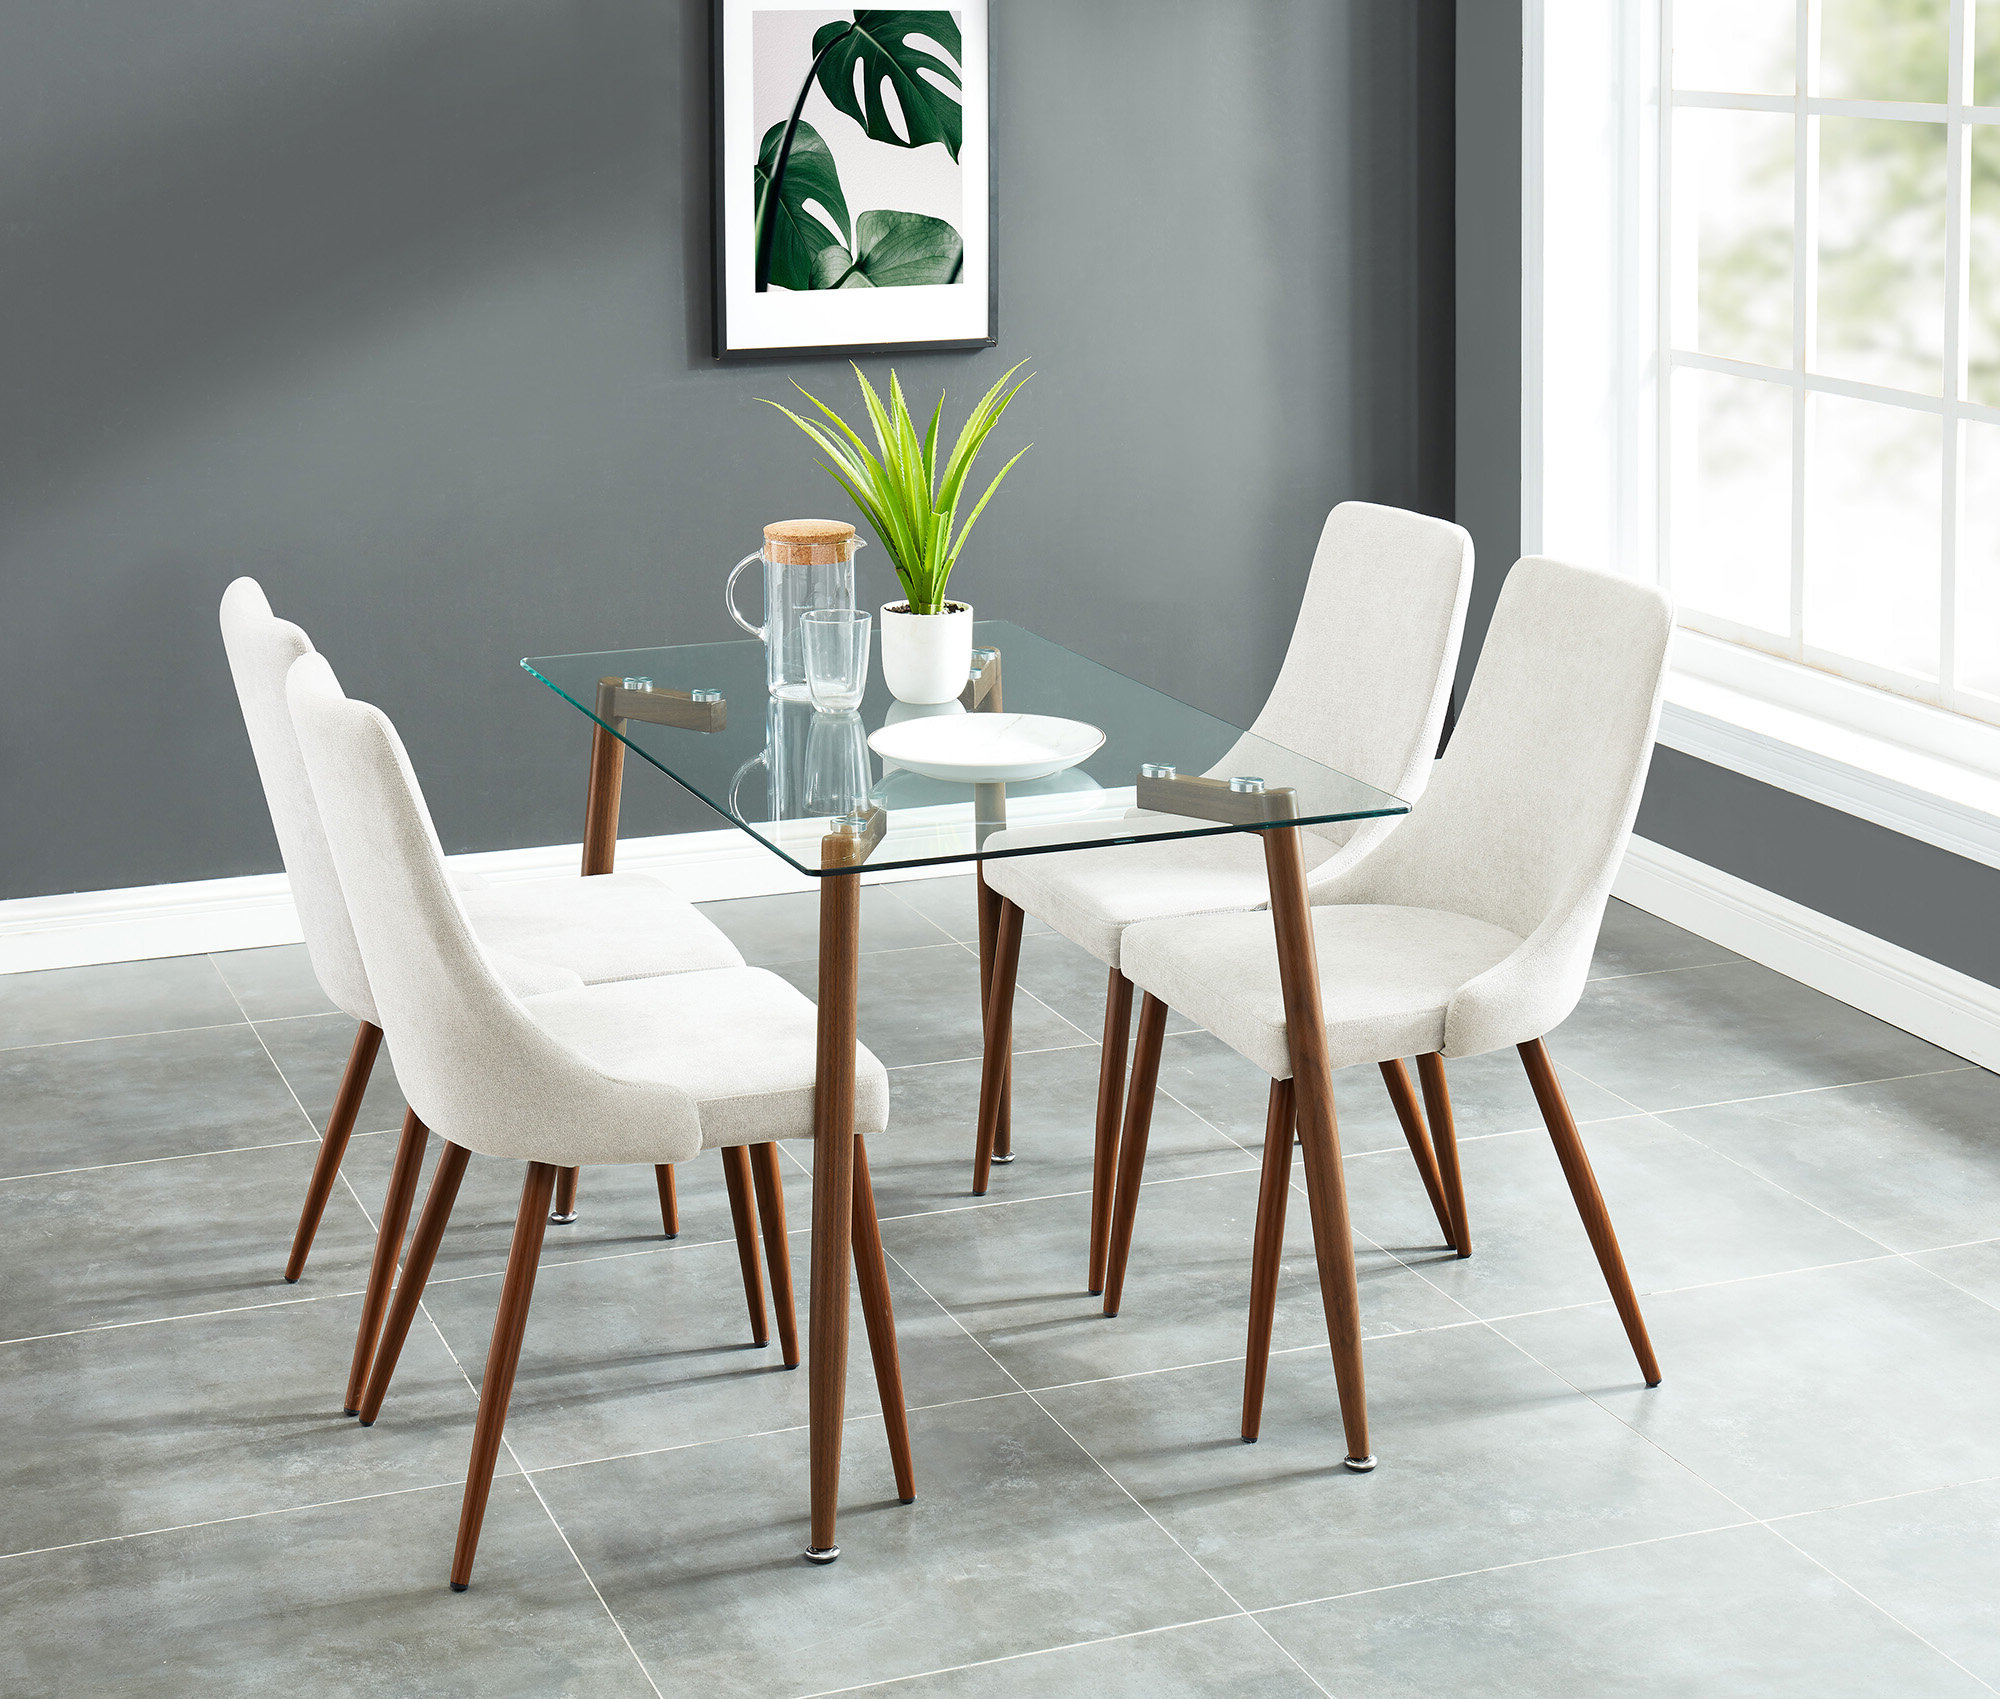 Carmela Contemporary 5 Piece Dining Set Inside Most Up To Date Ganya 5 Piece Dining Sets (View 2 of 20)